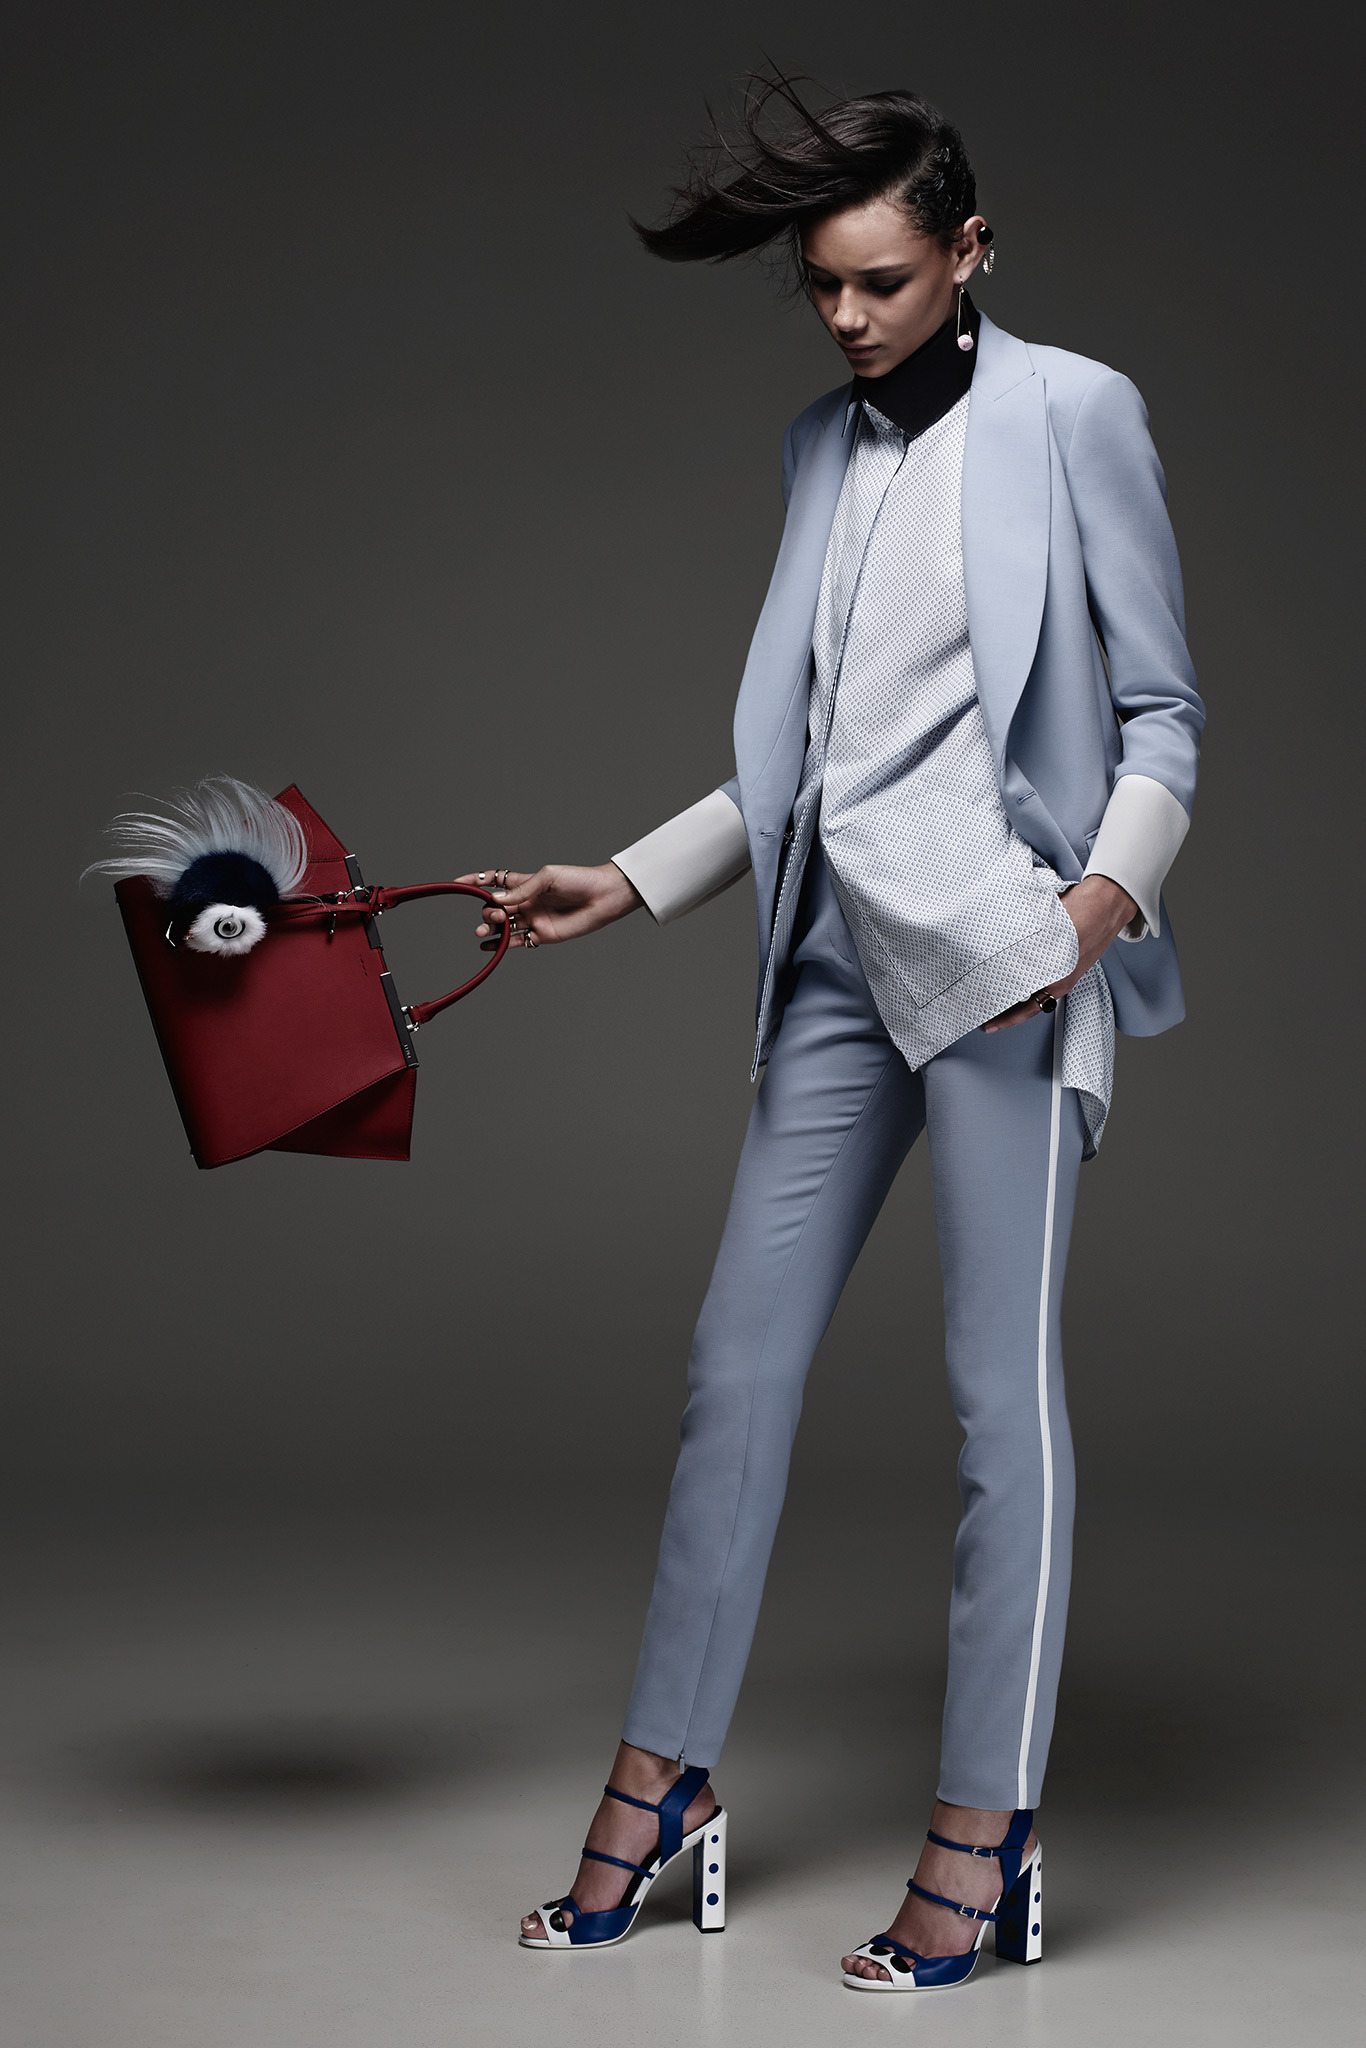 Fendi-resort-2015_binx-walton-campaigns-76.